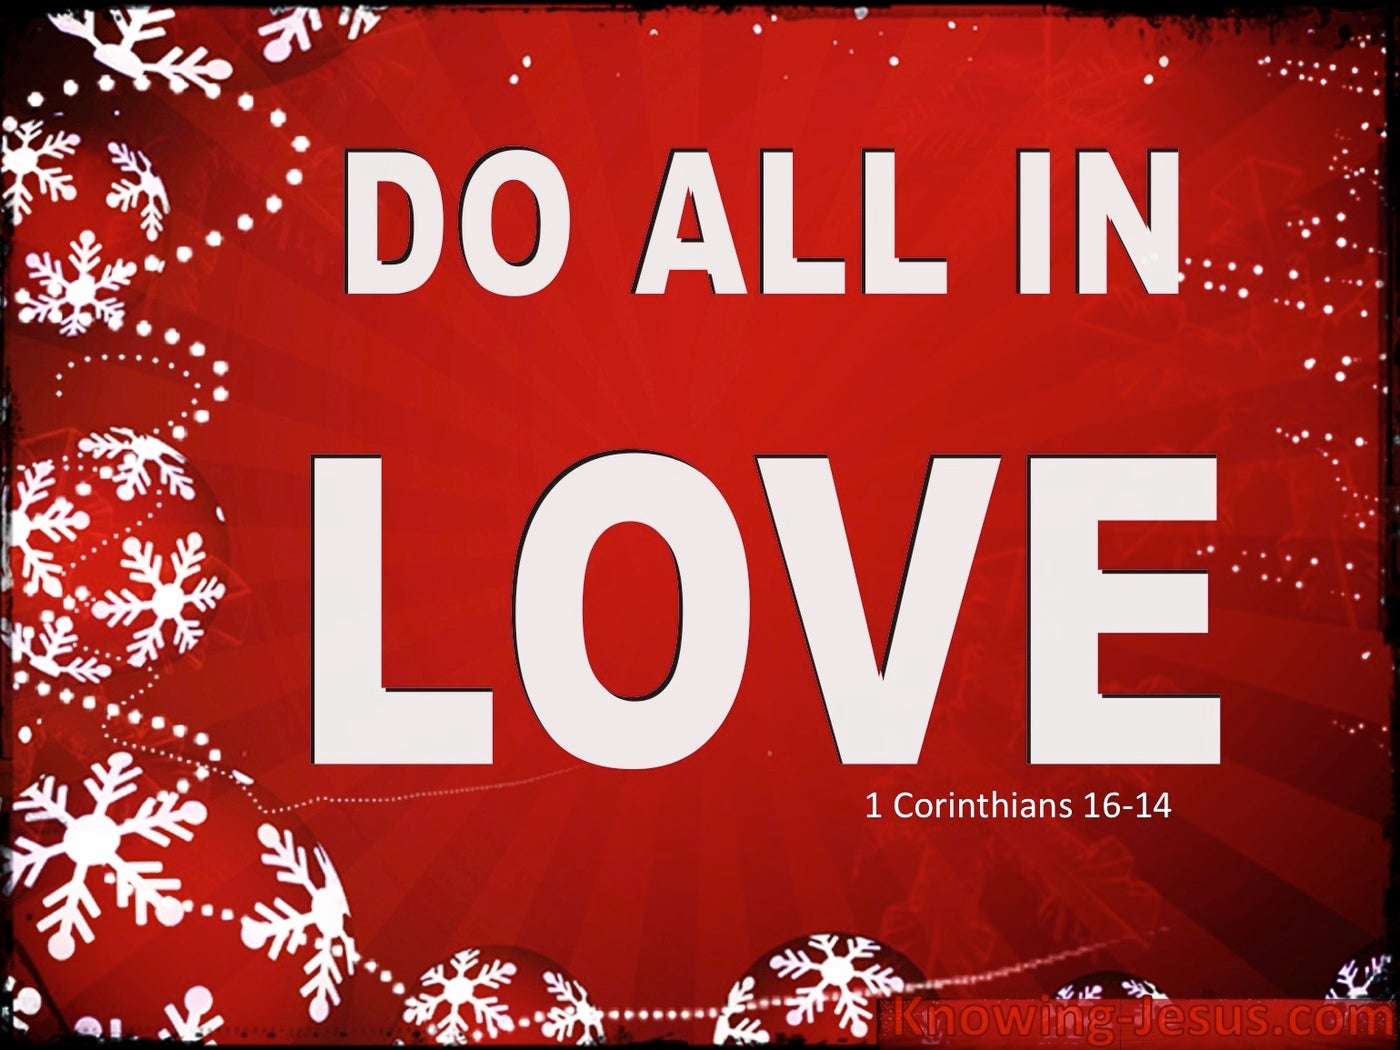 1 Corinthians 16:14 Let All Be Done In Love (red)